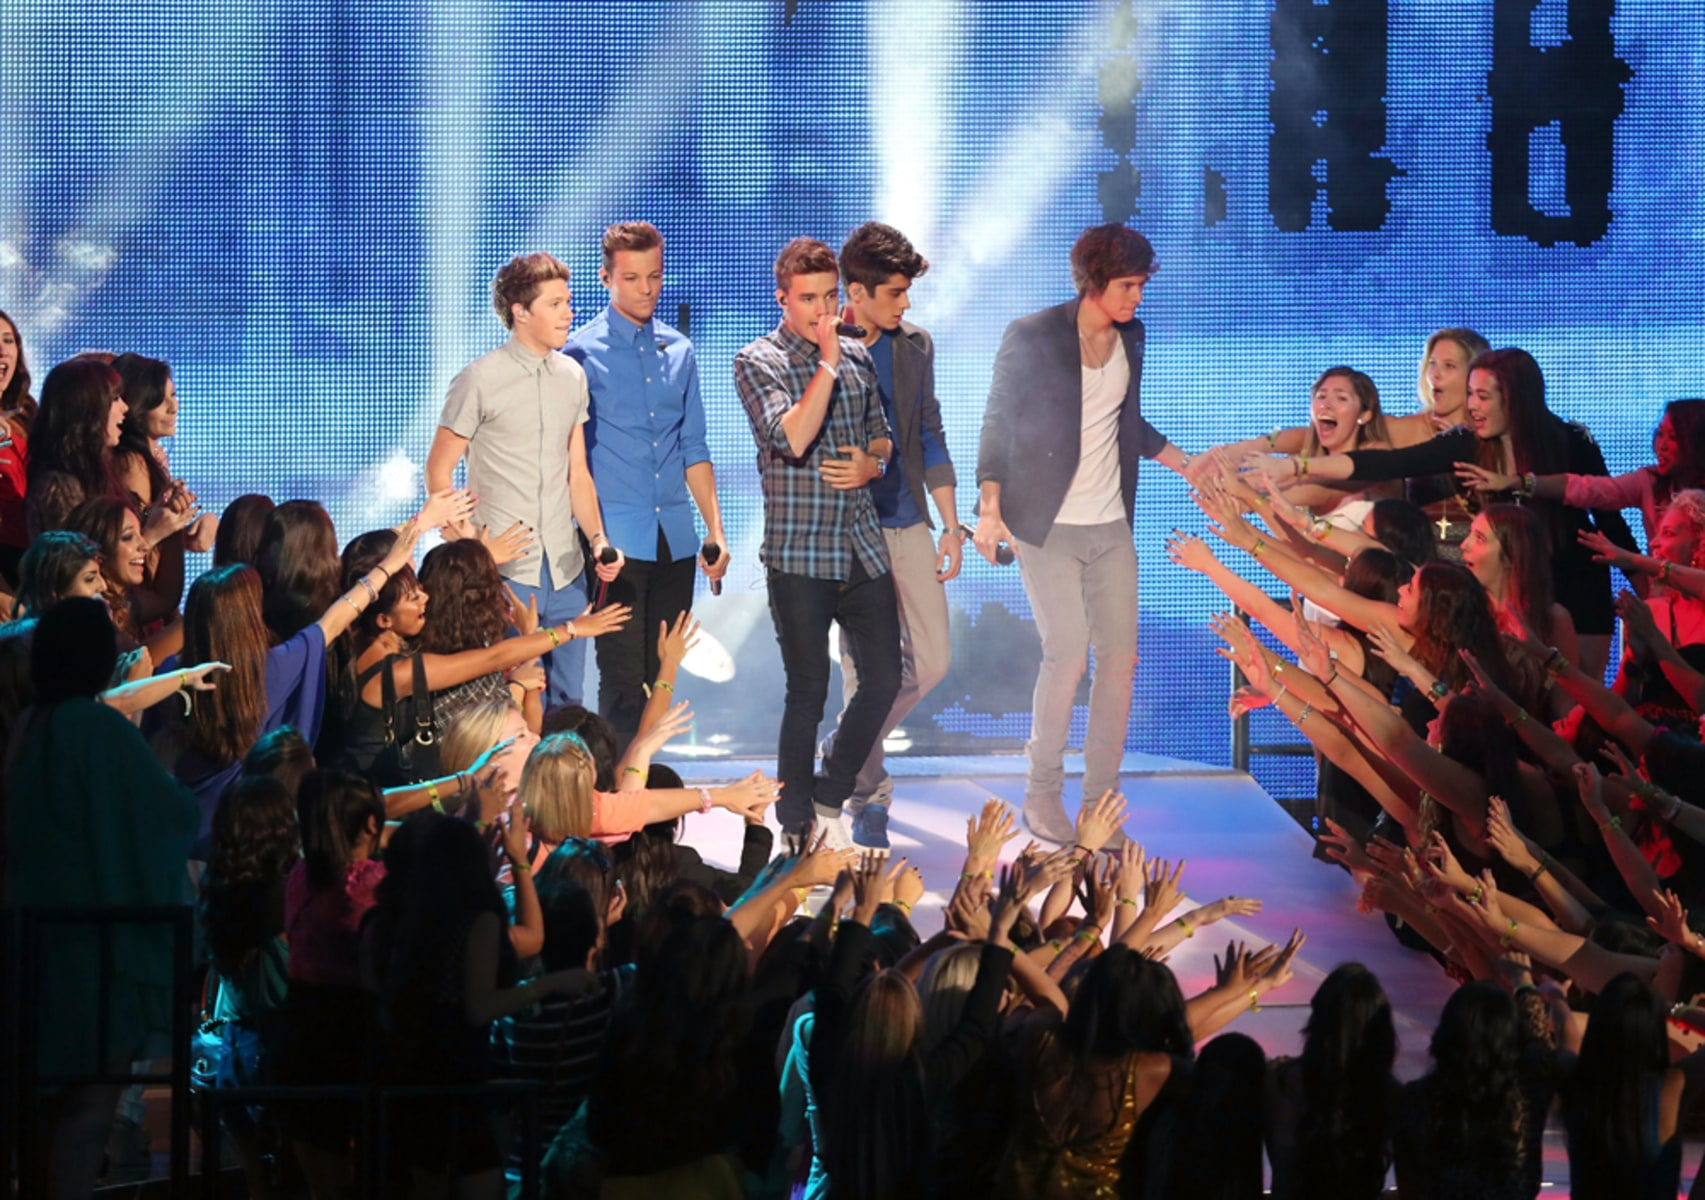 Image: 2012 MTV Video Music Awards - Show